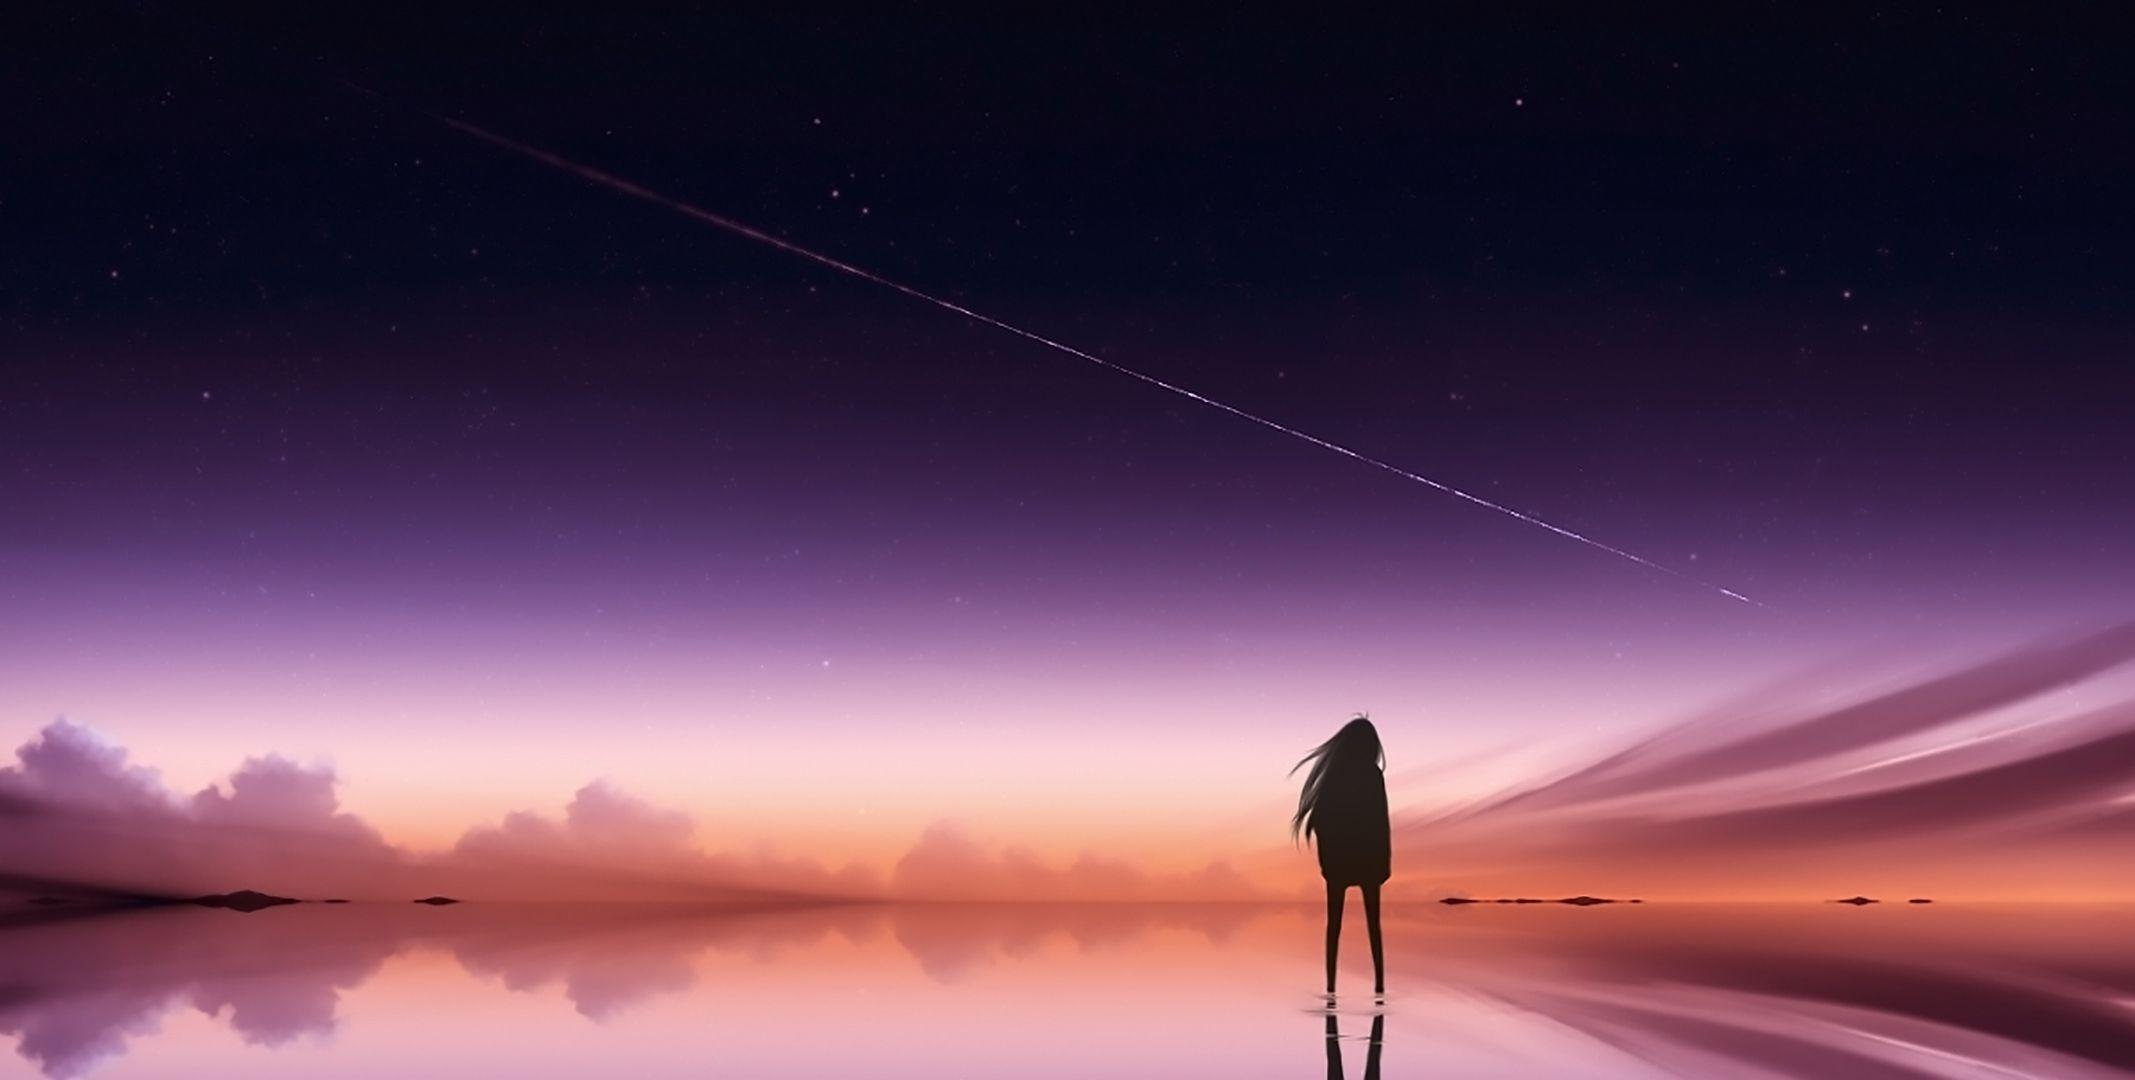 Anime Alone Wallpapers Wallpaper Cave